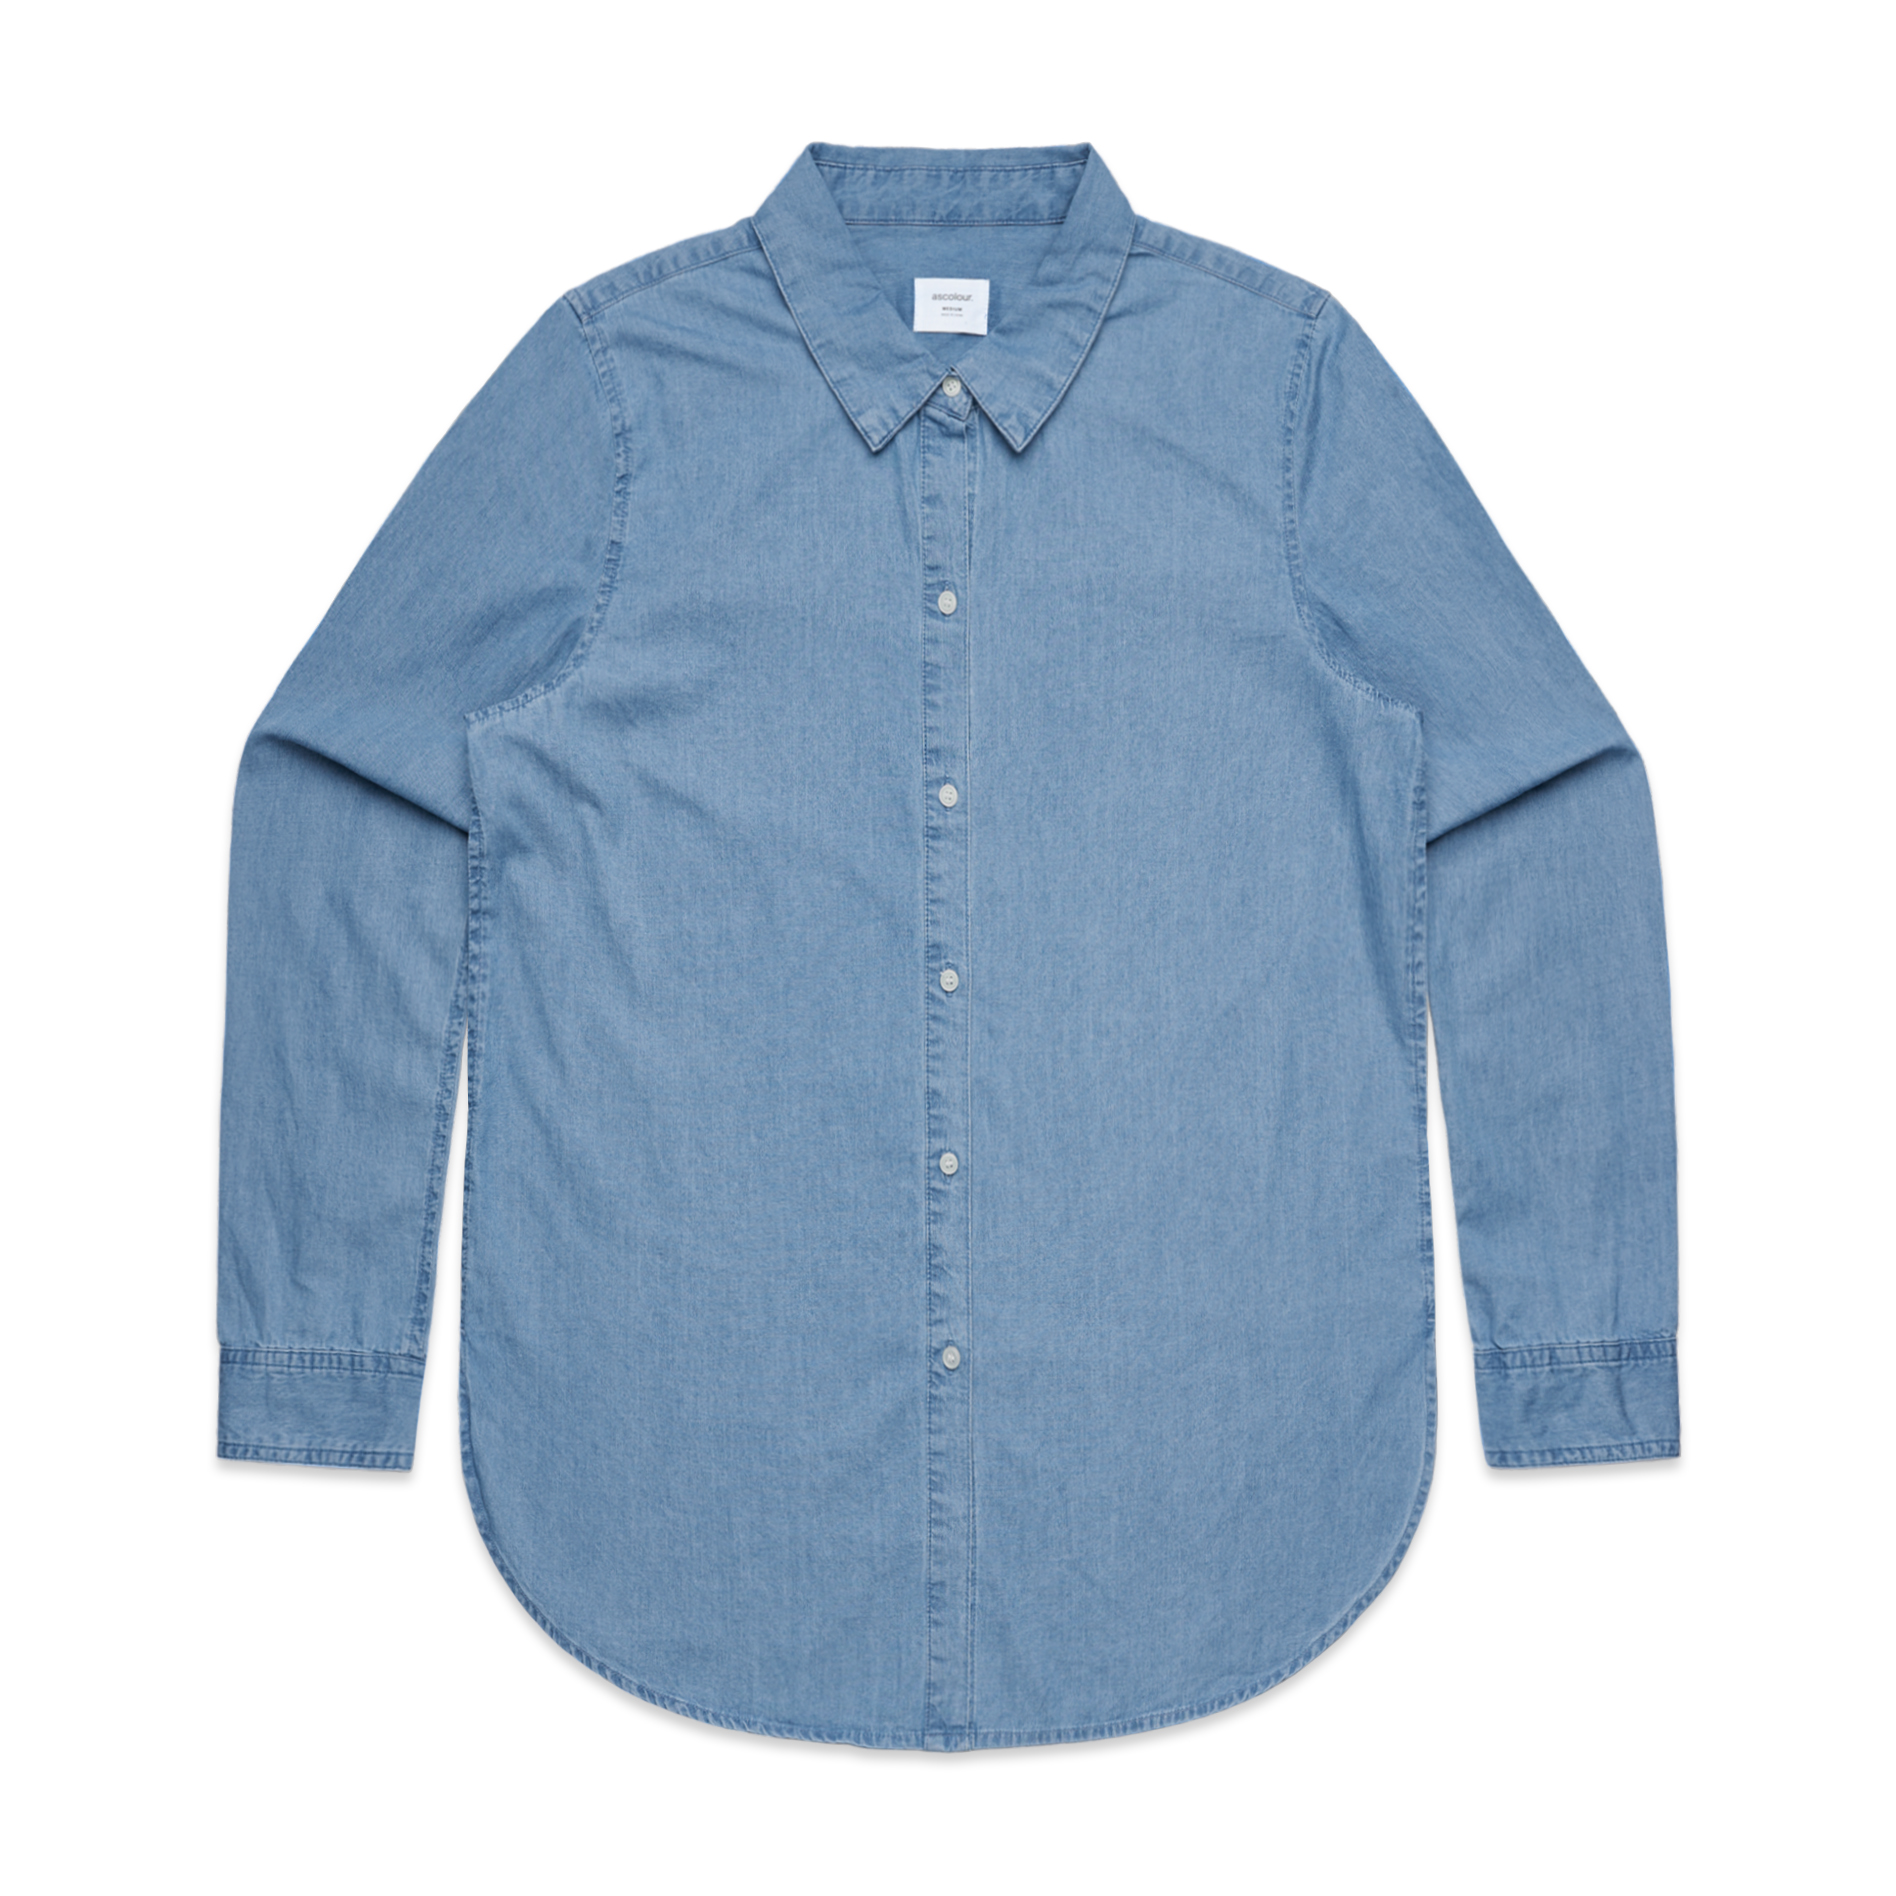 4042 WOMENS BLUE DENIM SHIRT